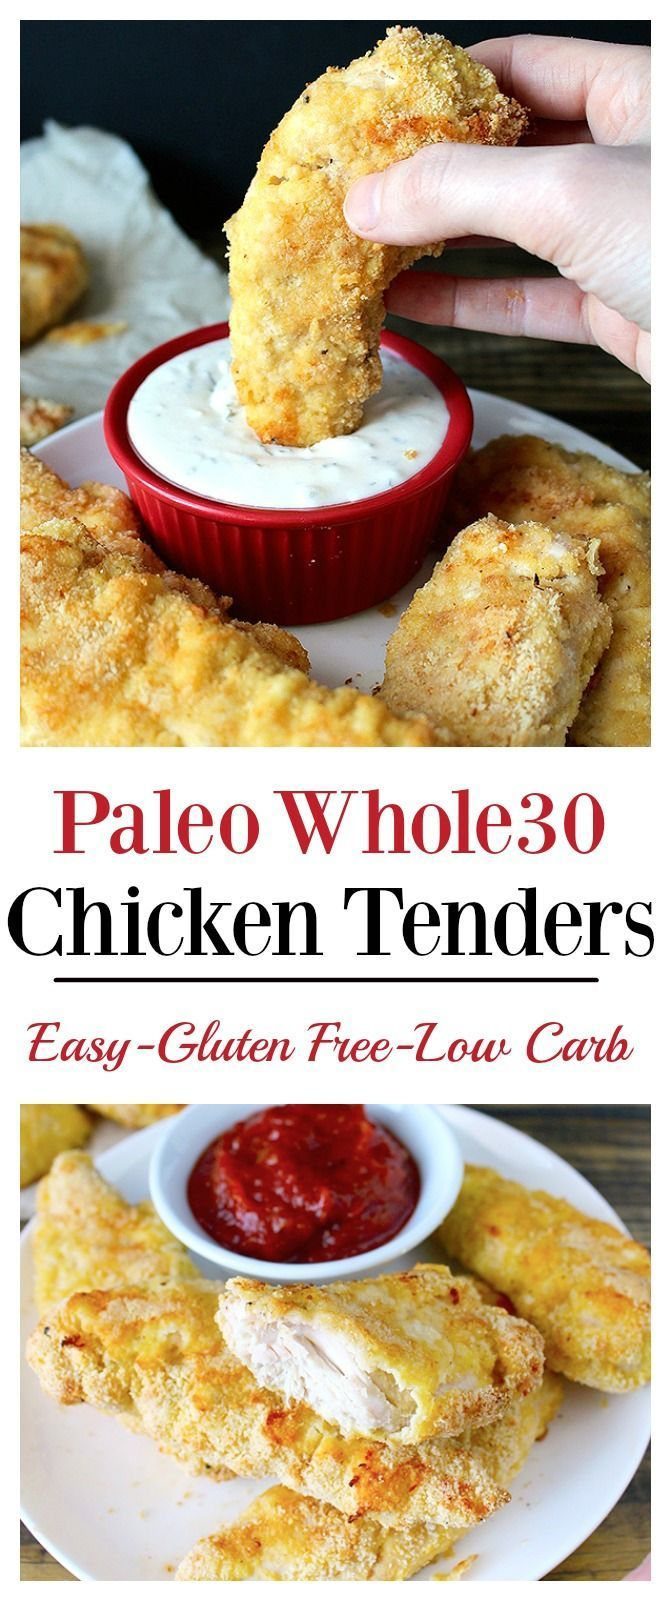 17+ best ideas about Paleo Chicken Tenders on Pinterest ...